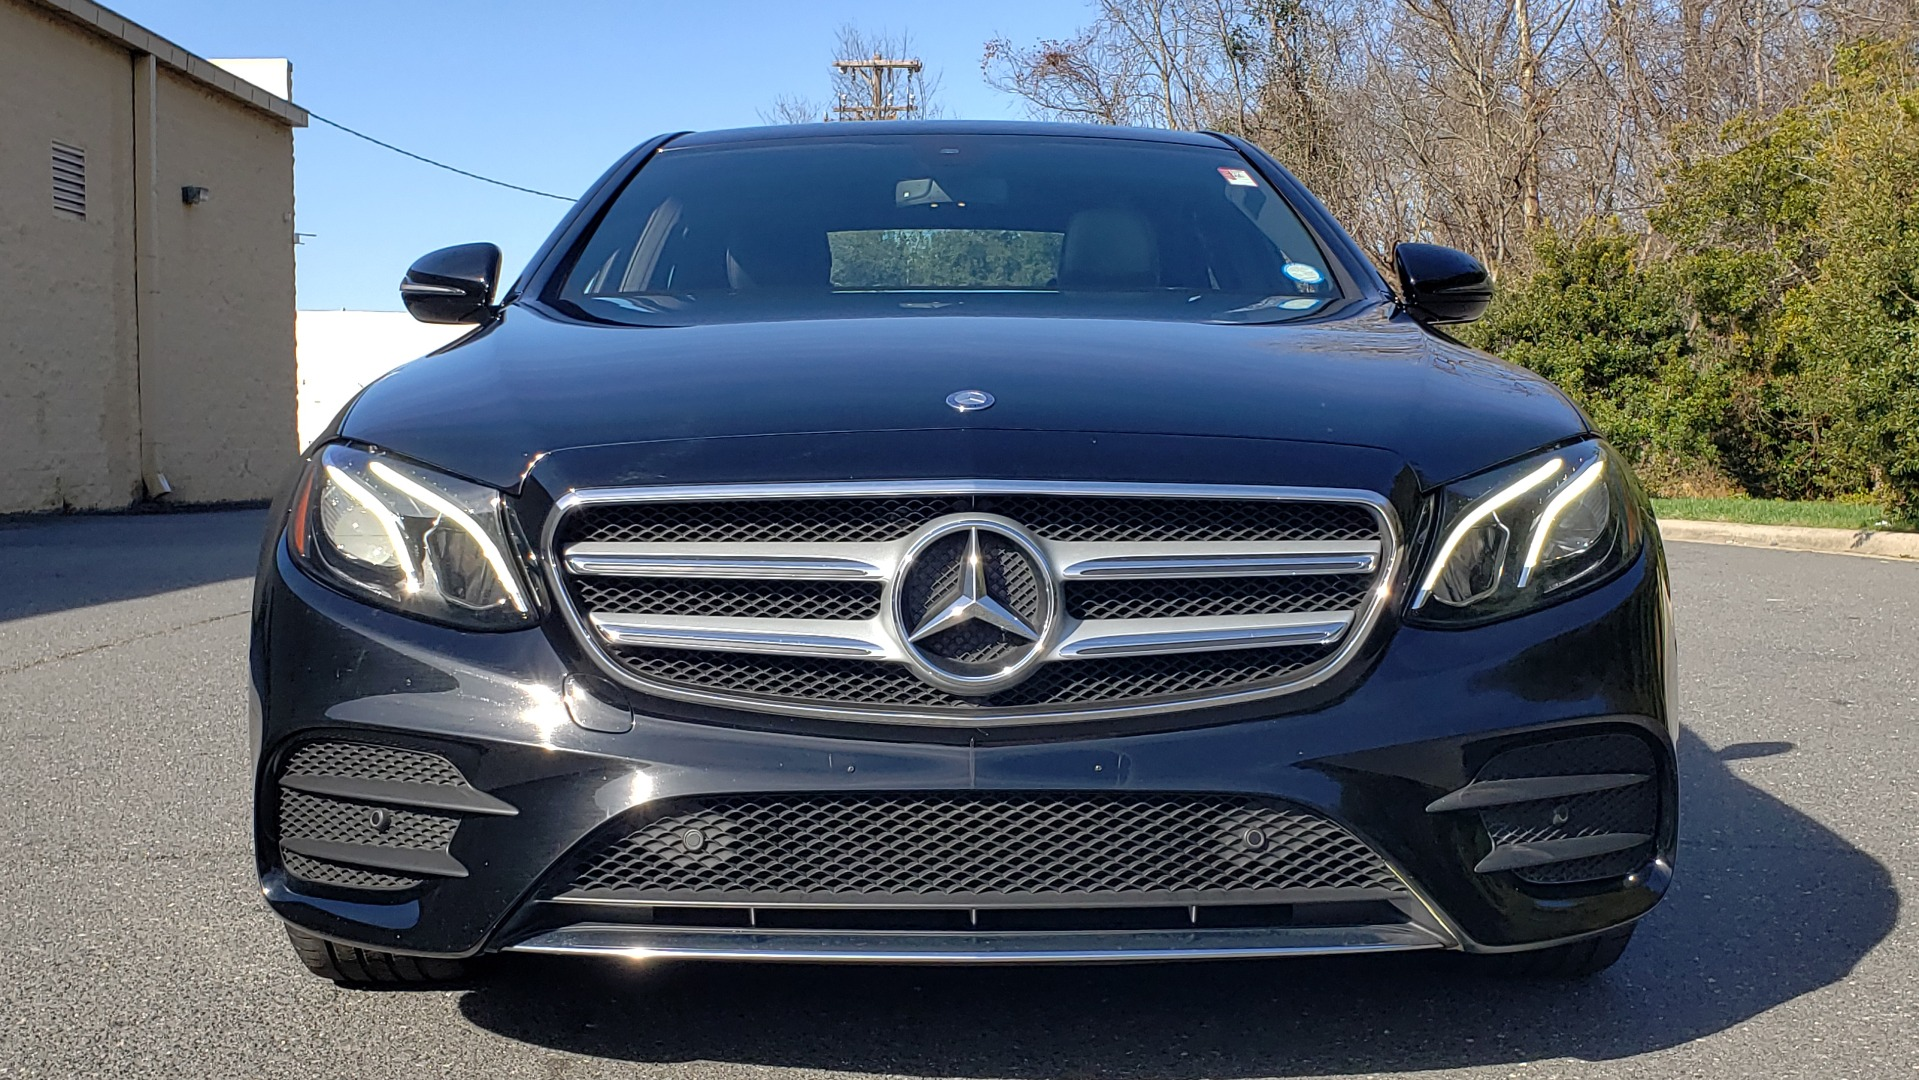 Used 2017 Mercedes-Benz E-CLASS E 300 PREMIUM / NAV / SUNROOF / BURMESTER / HTD STS / REARVIEW for sale $29,995 at Formula Imports in Charlotte NC 28227 21